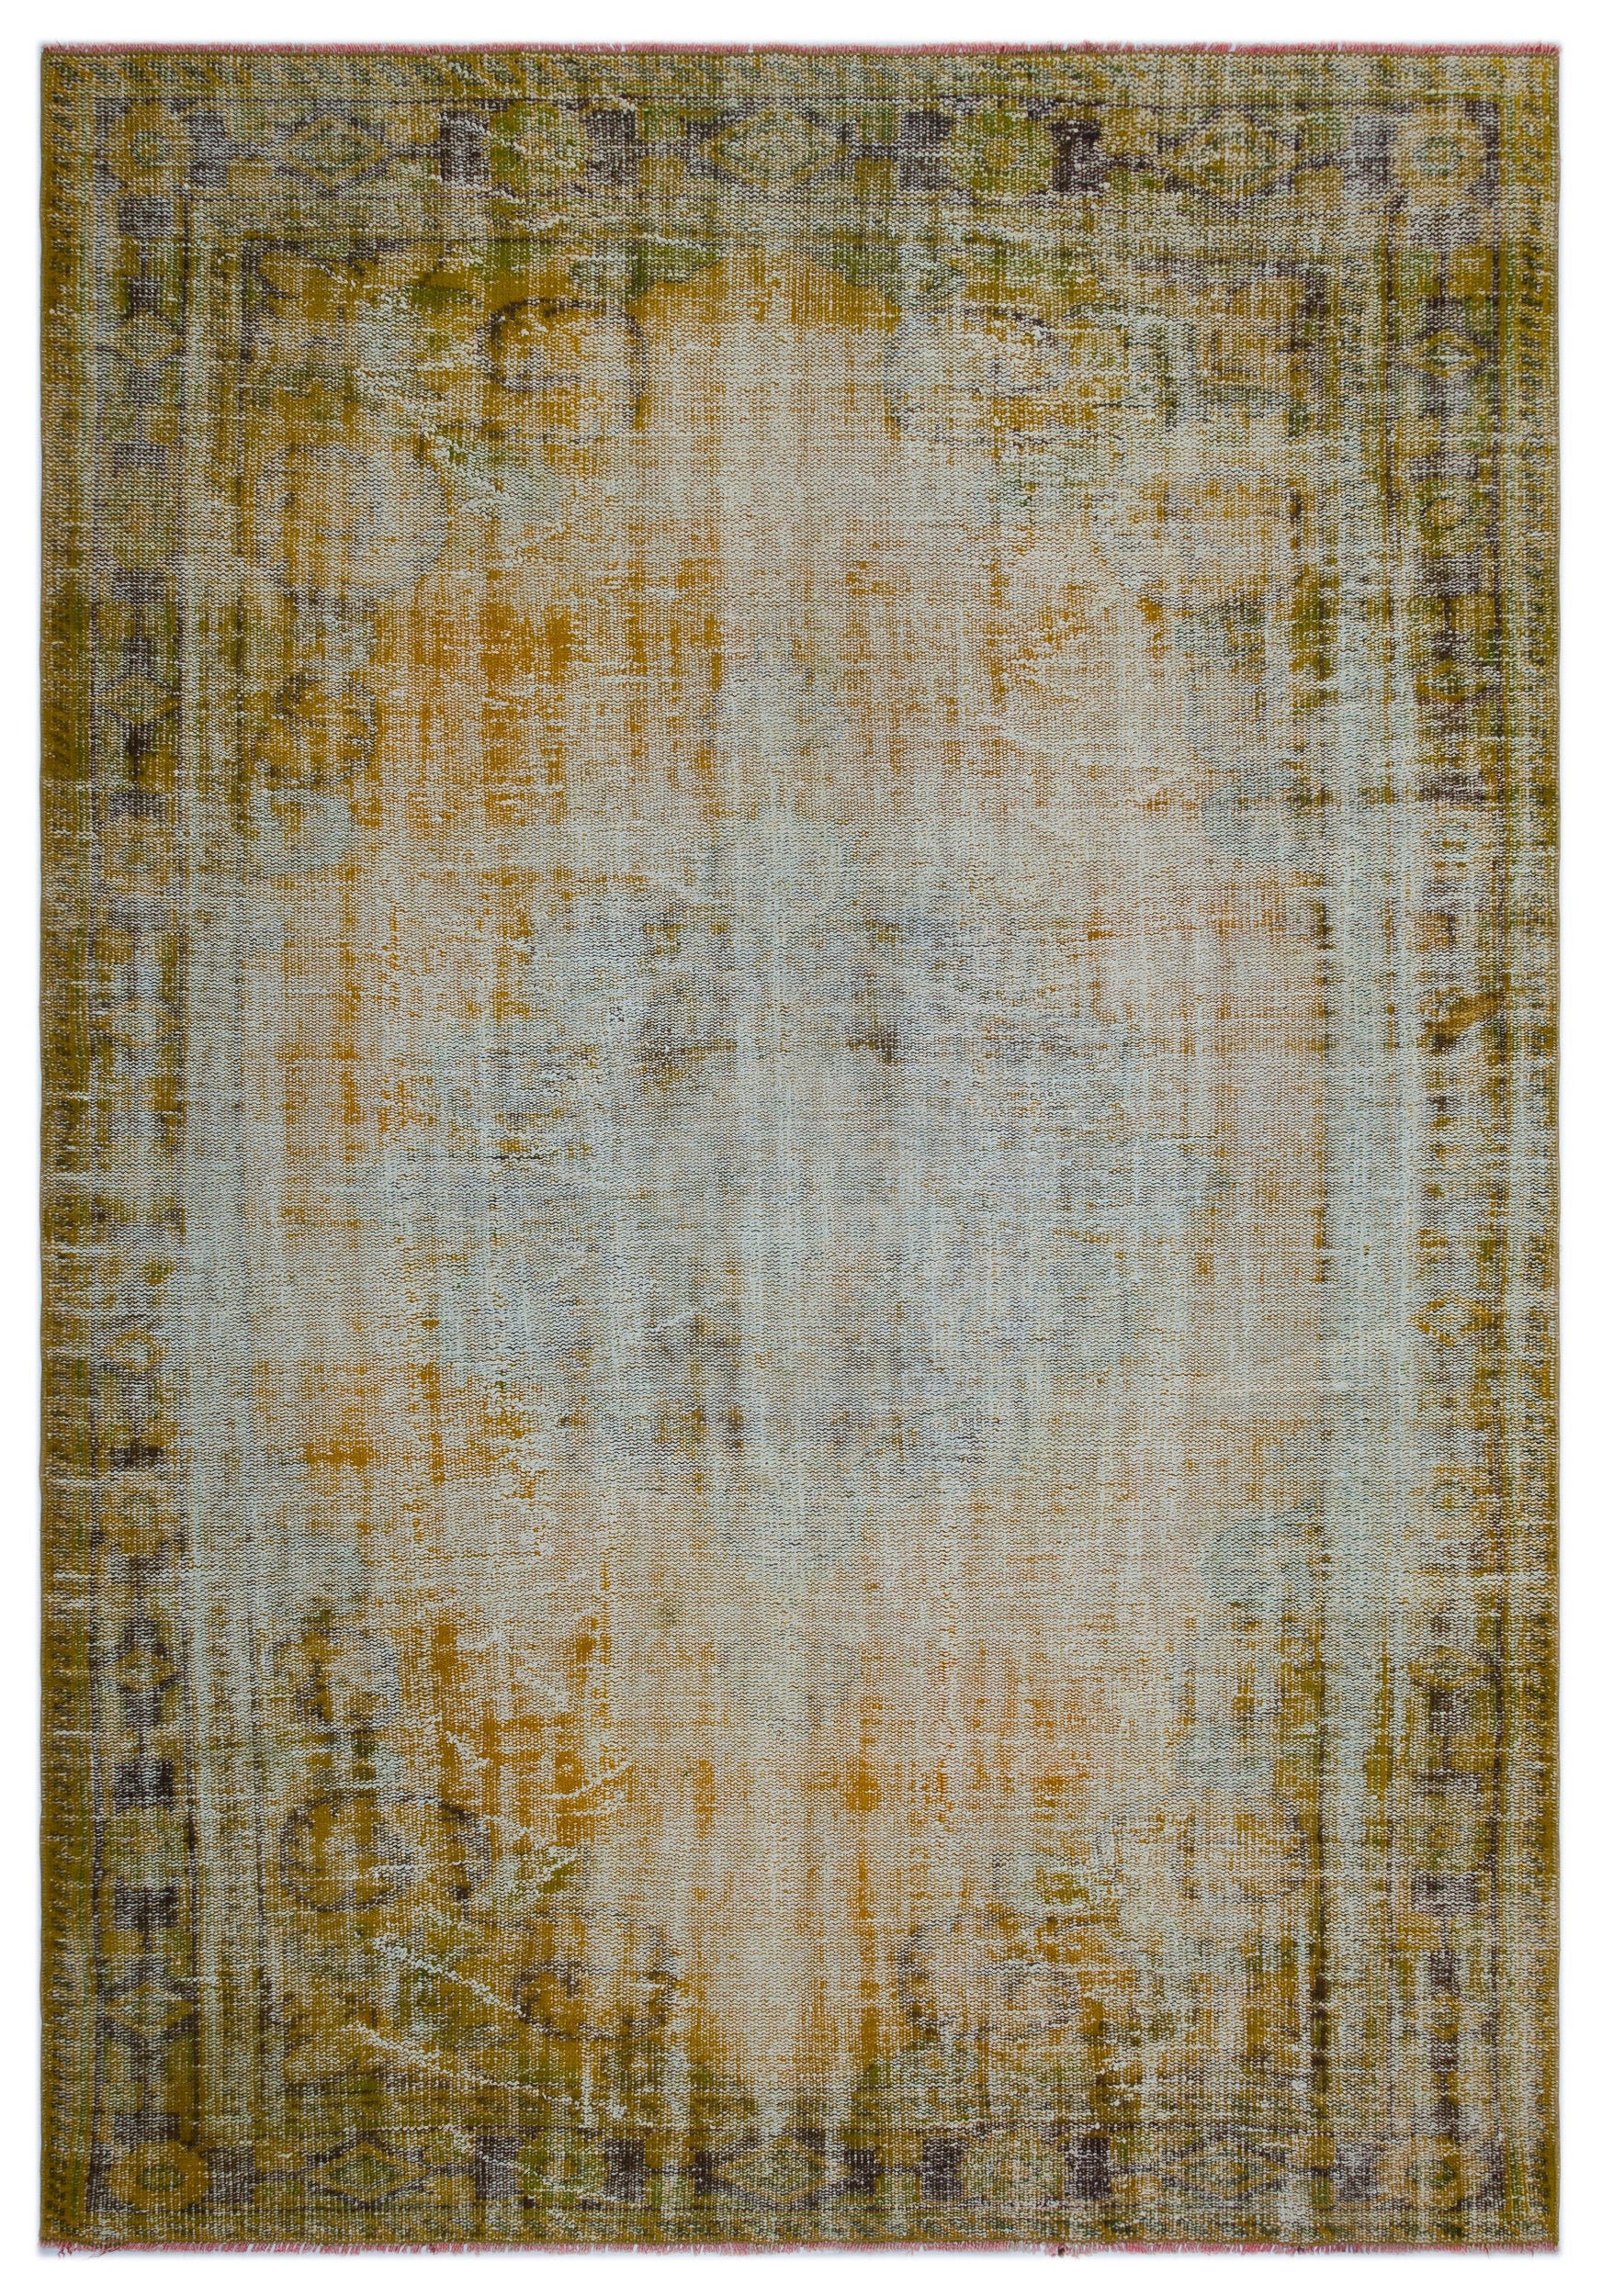 Retro Over Dyed Vintage Rug 6'3'' x 8'12'' ft 190 x 274 cm